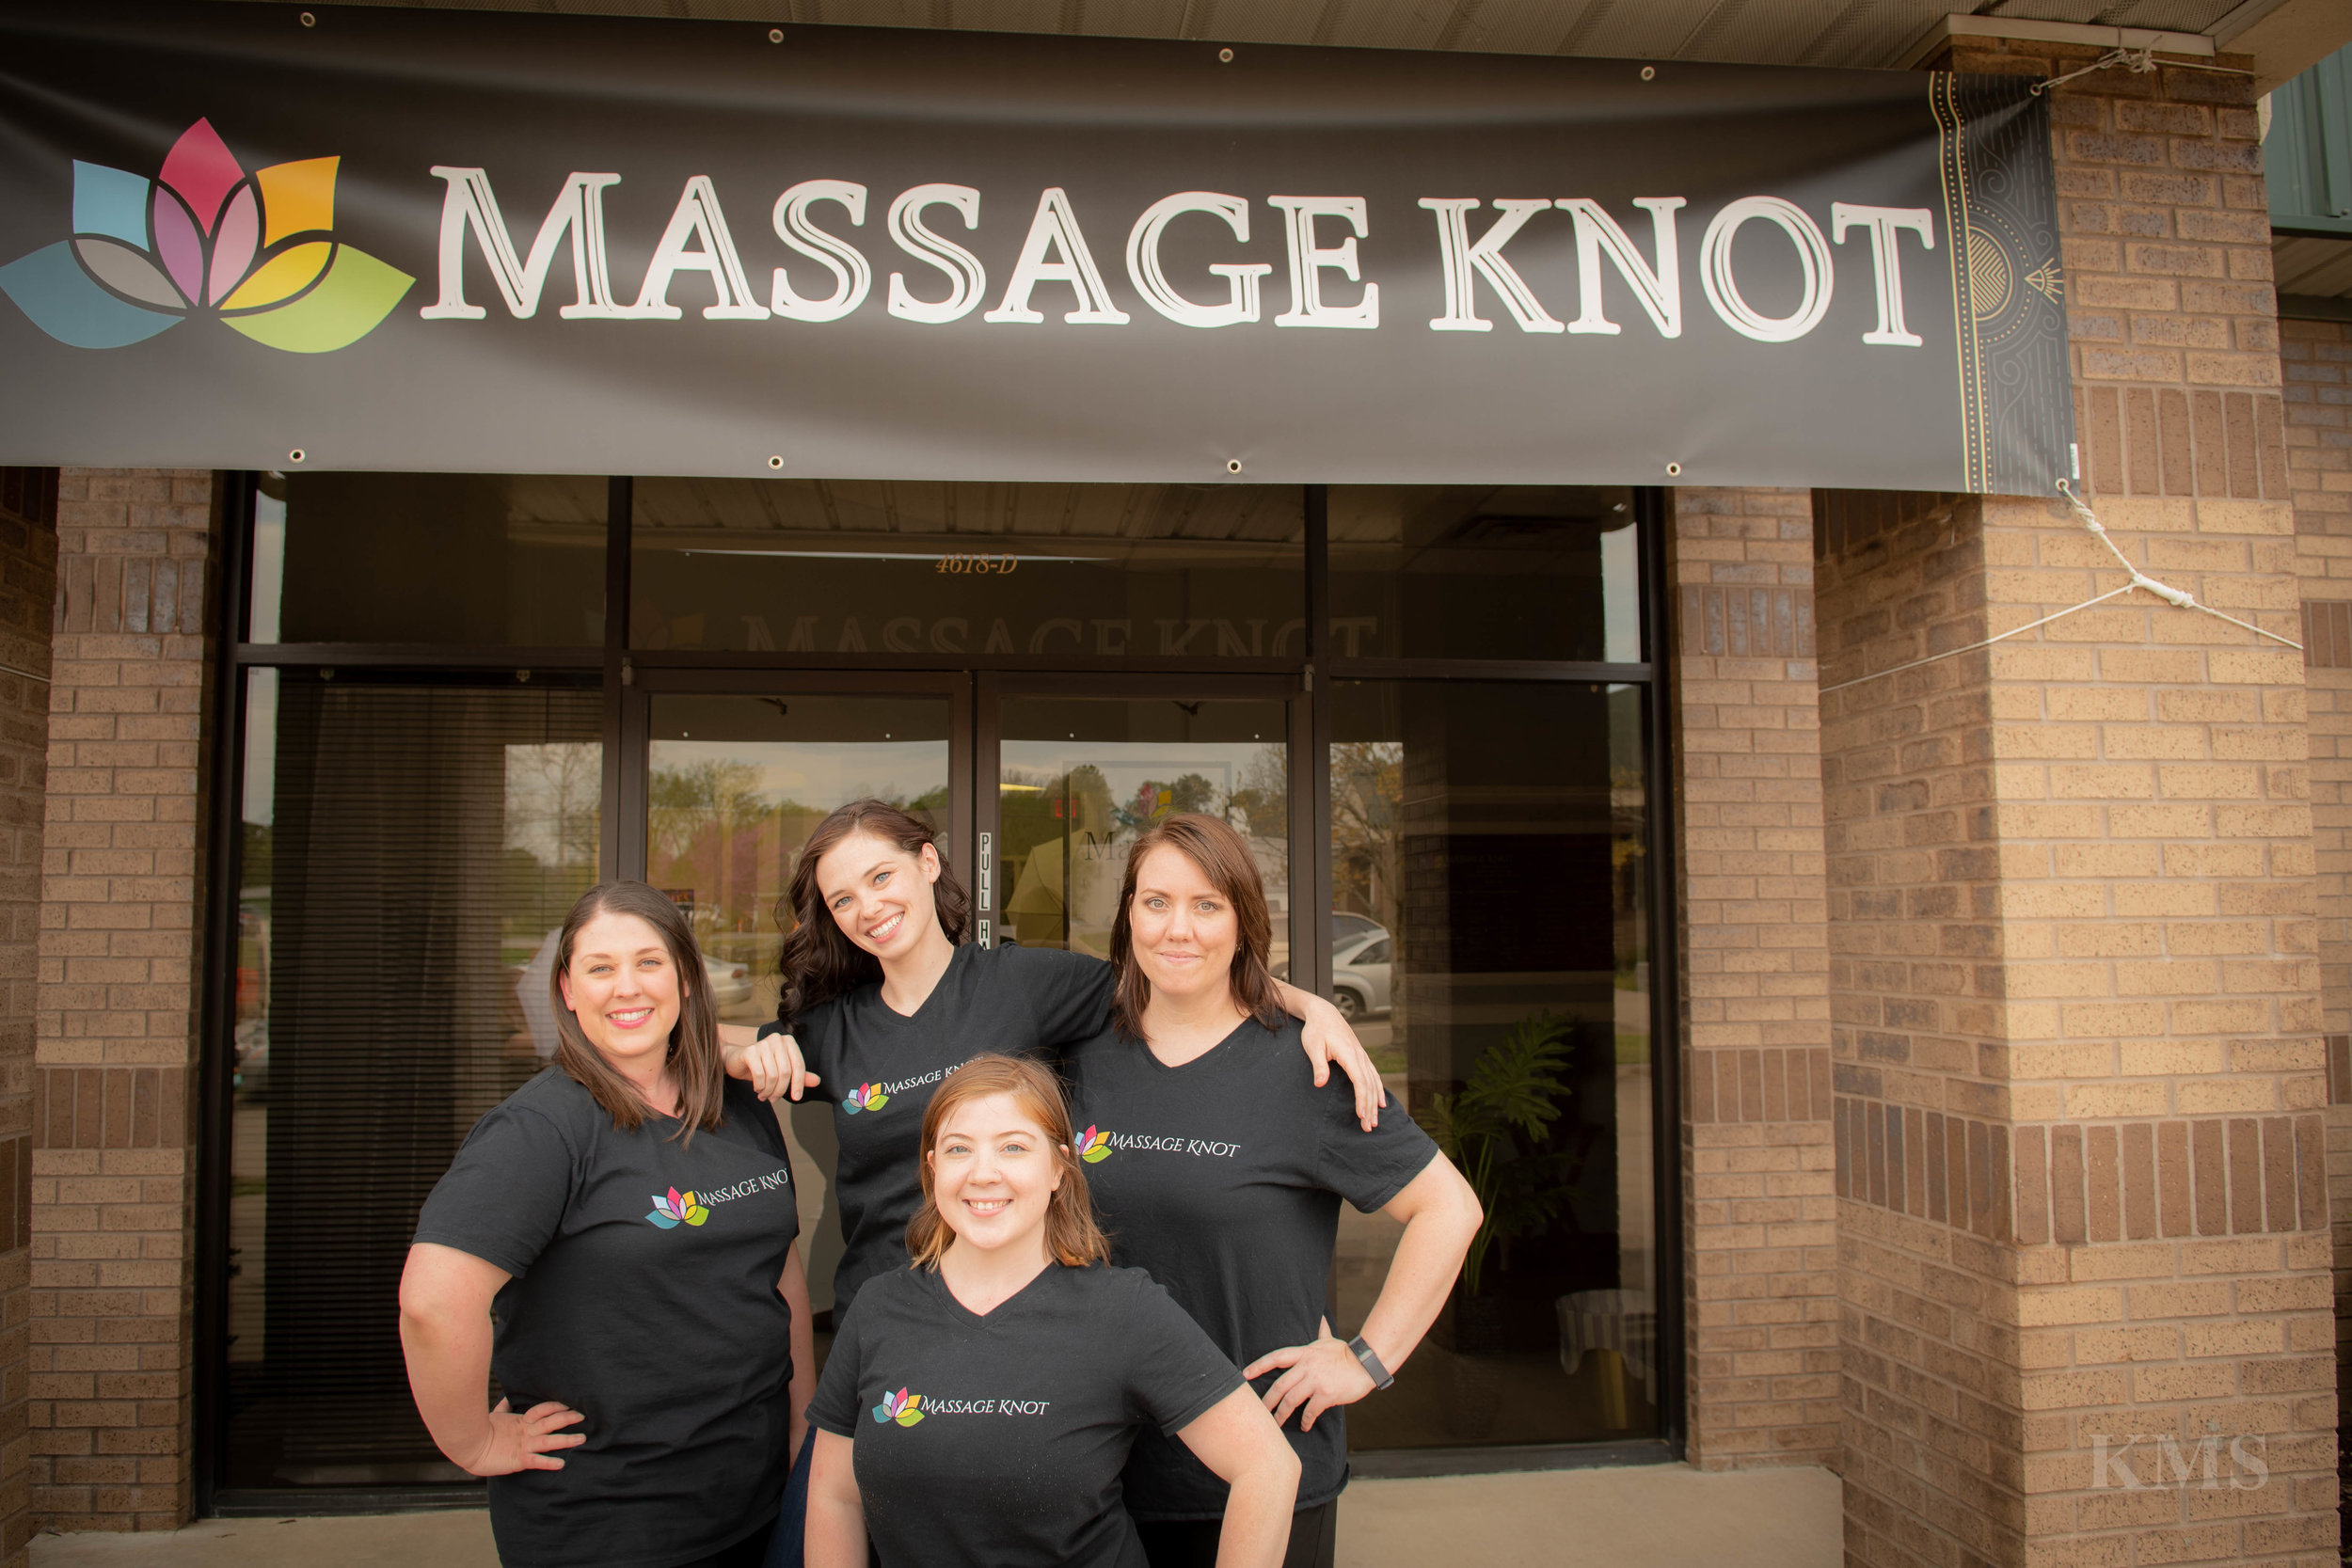 Here at Massage Knot we are proud to say we have experienced therapist's. They all have their very own style and techniques. Try one or all to make sure you find the right style for your specific needs. All our therapist's are great at making sure to cater to your individual pain and give you the relaxation you need and deserve. Make sure you schedule your session today as they all fill up fast!